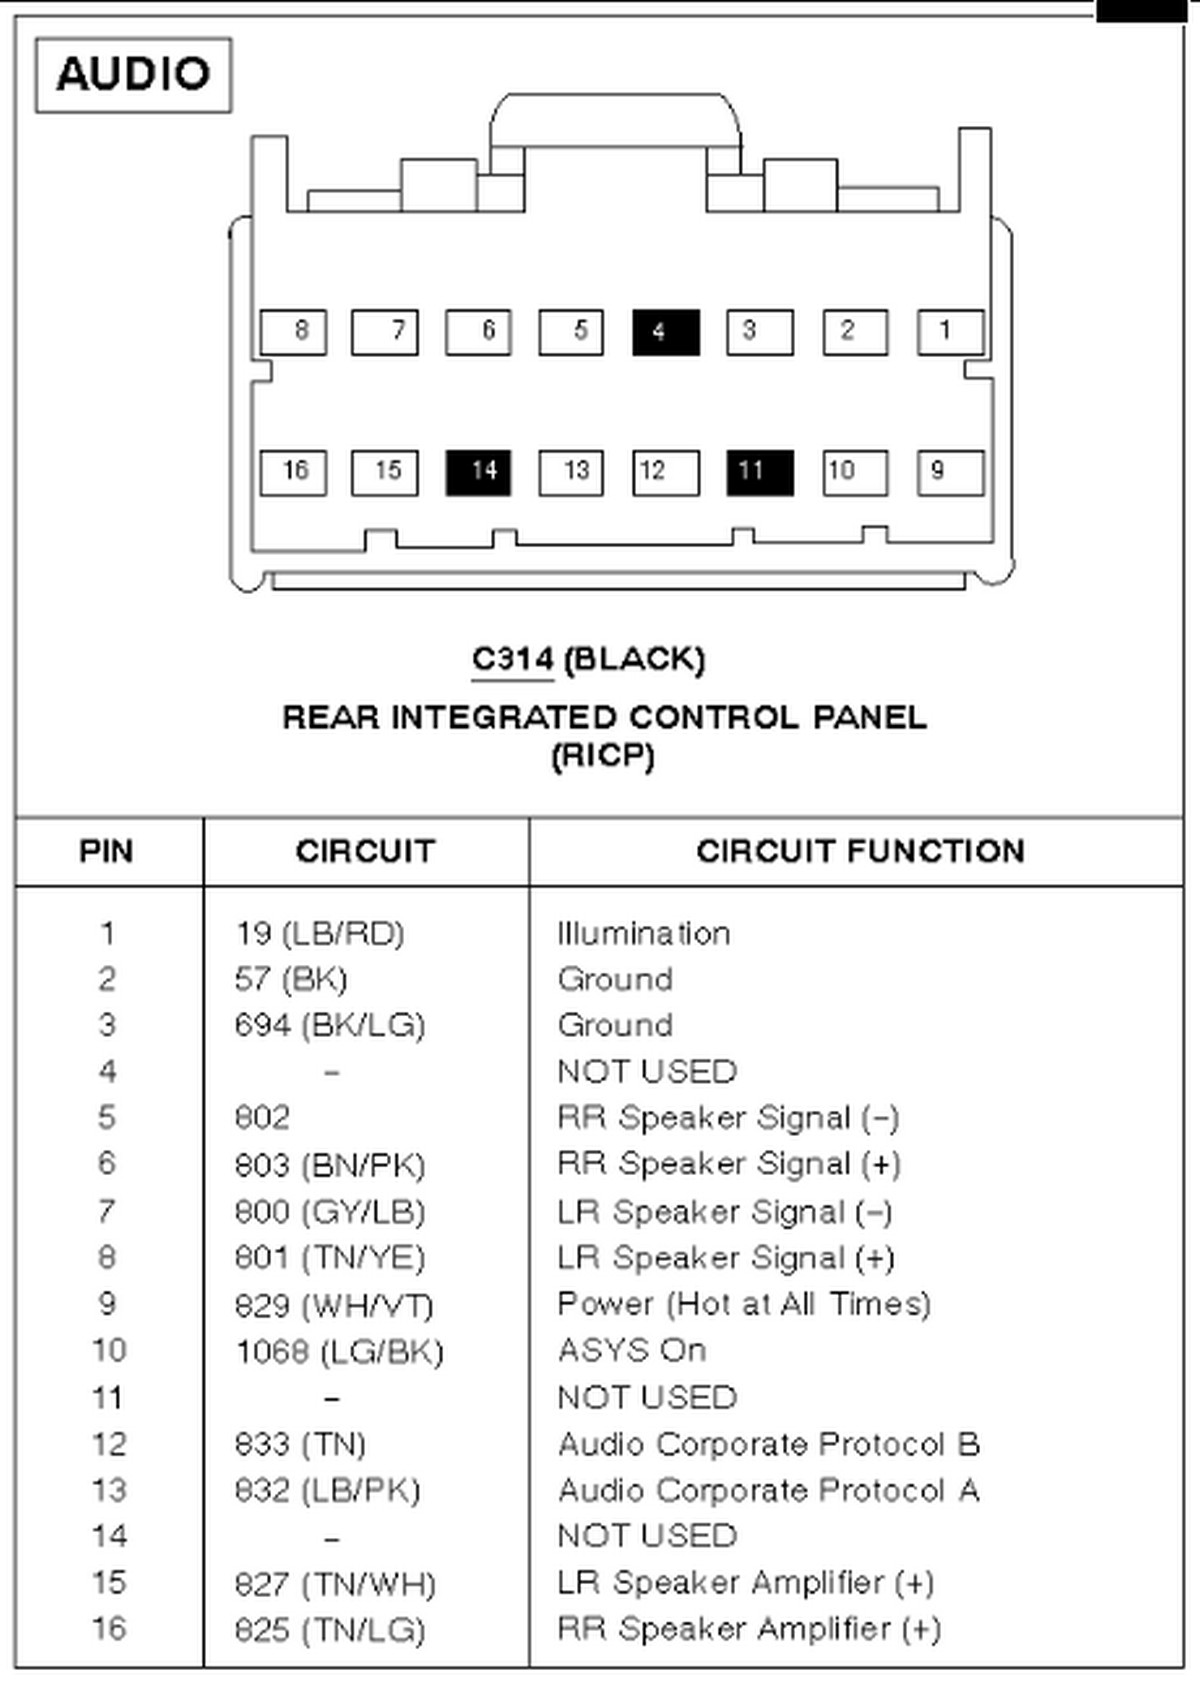 Ford Car Radio Stereo Audio Wiring Diagram Autoradio Connector Wire Quadlock Expedition Eddie Bauer 2001